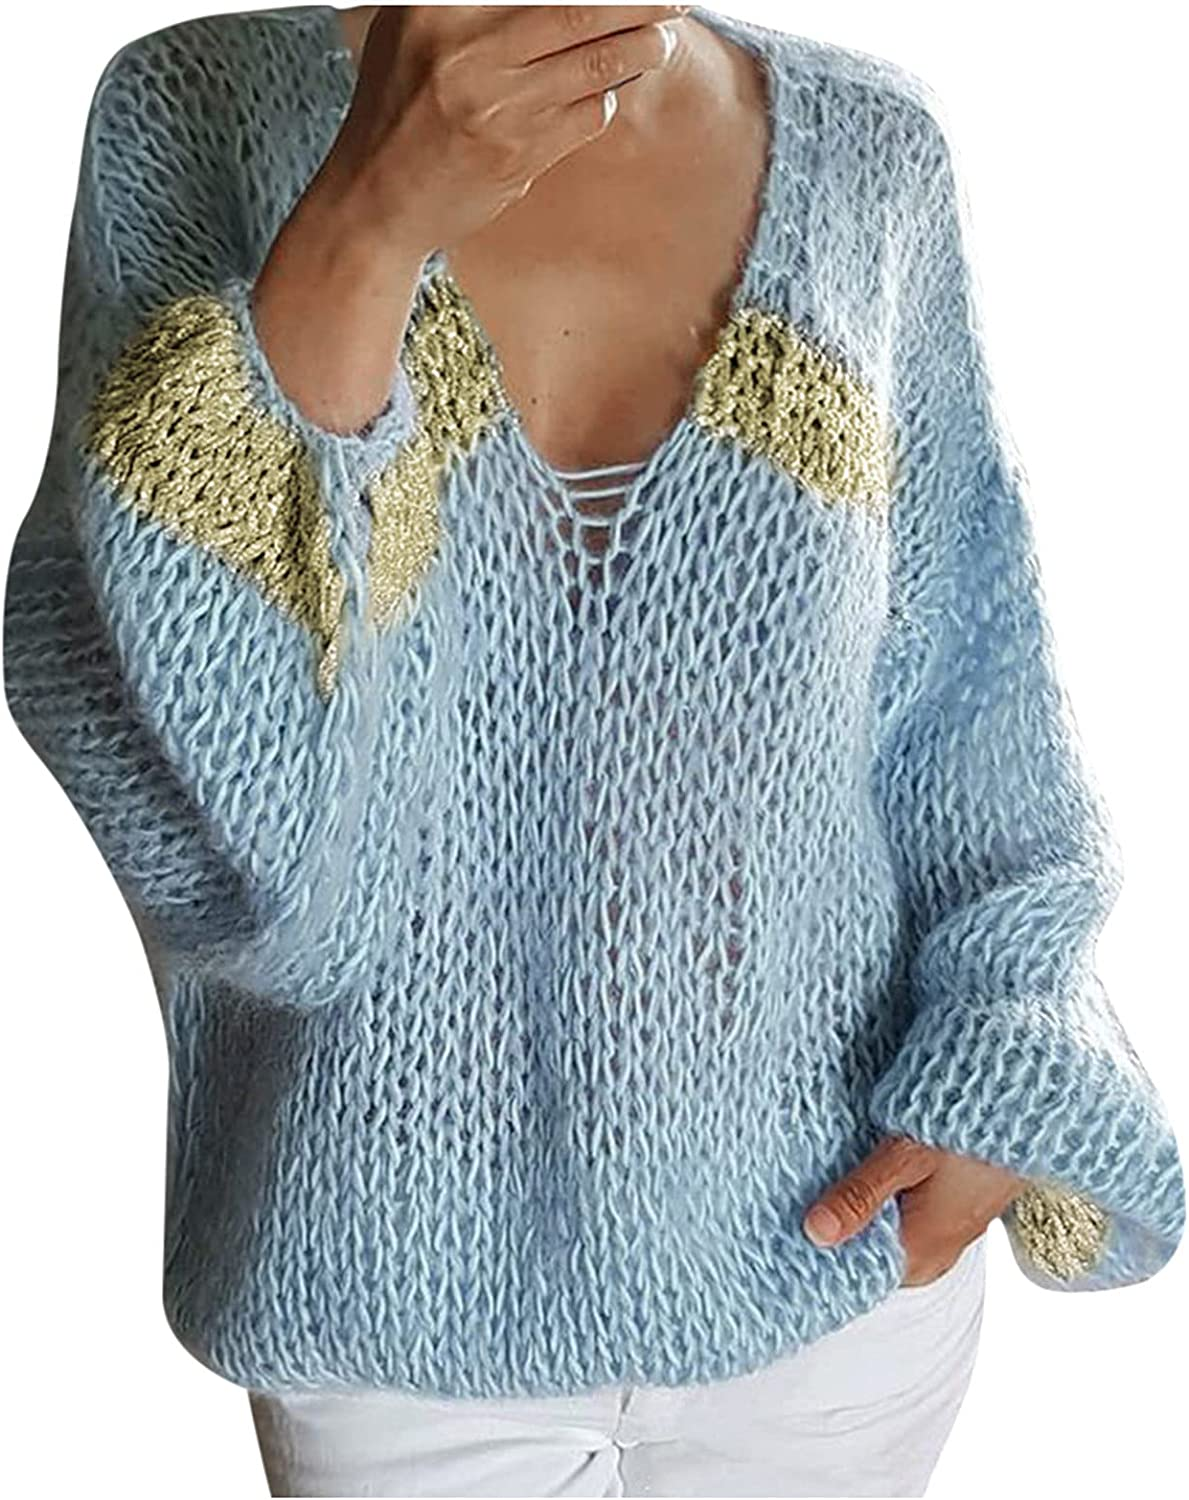 MAYW Women's Off Shoulder Long Sleeve V-Neck Ribbed Cable Pullover Sweaters Loose Fitting Jumper Tops